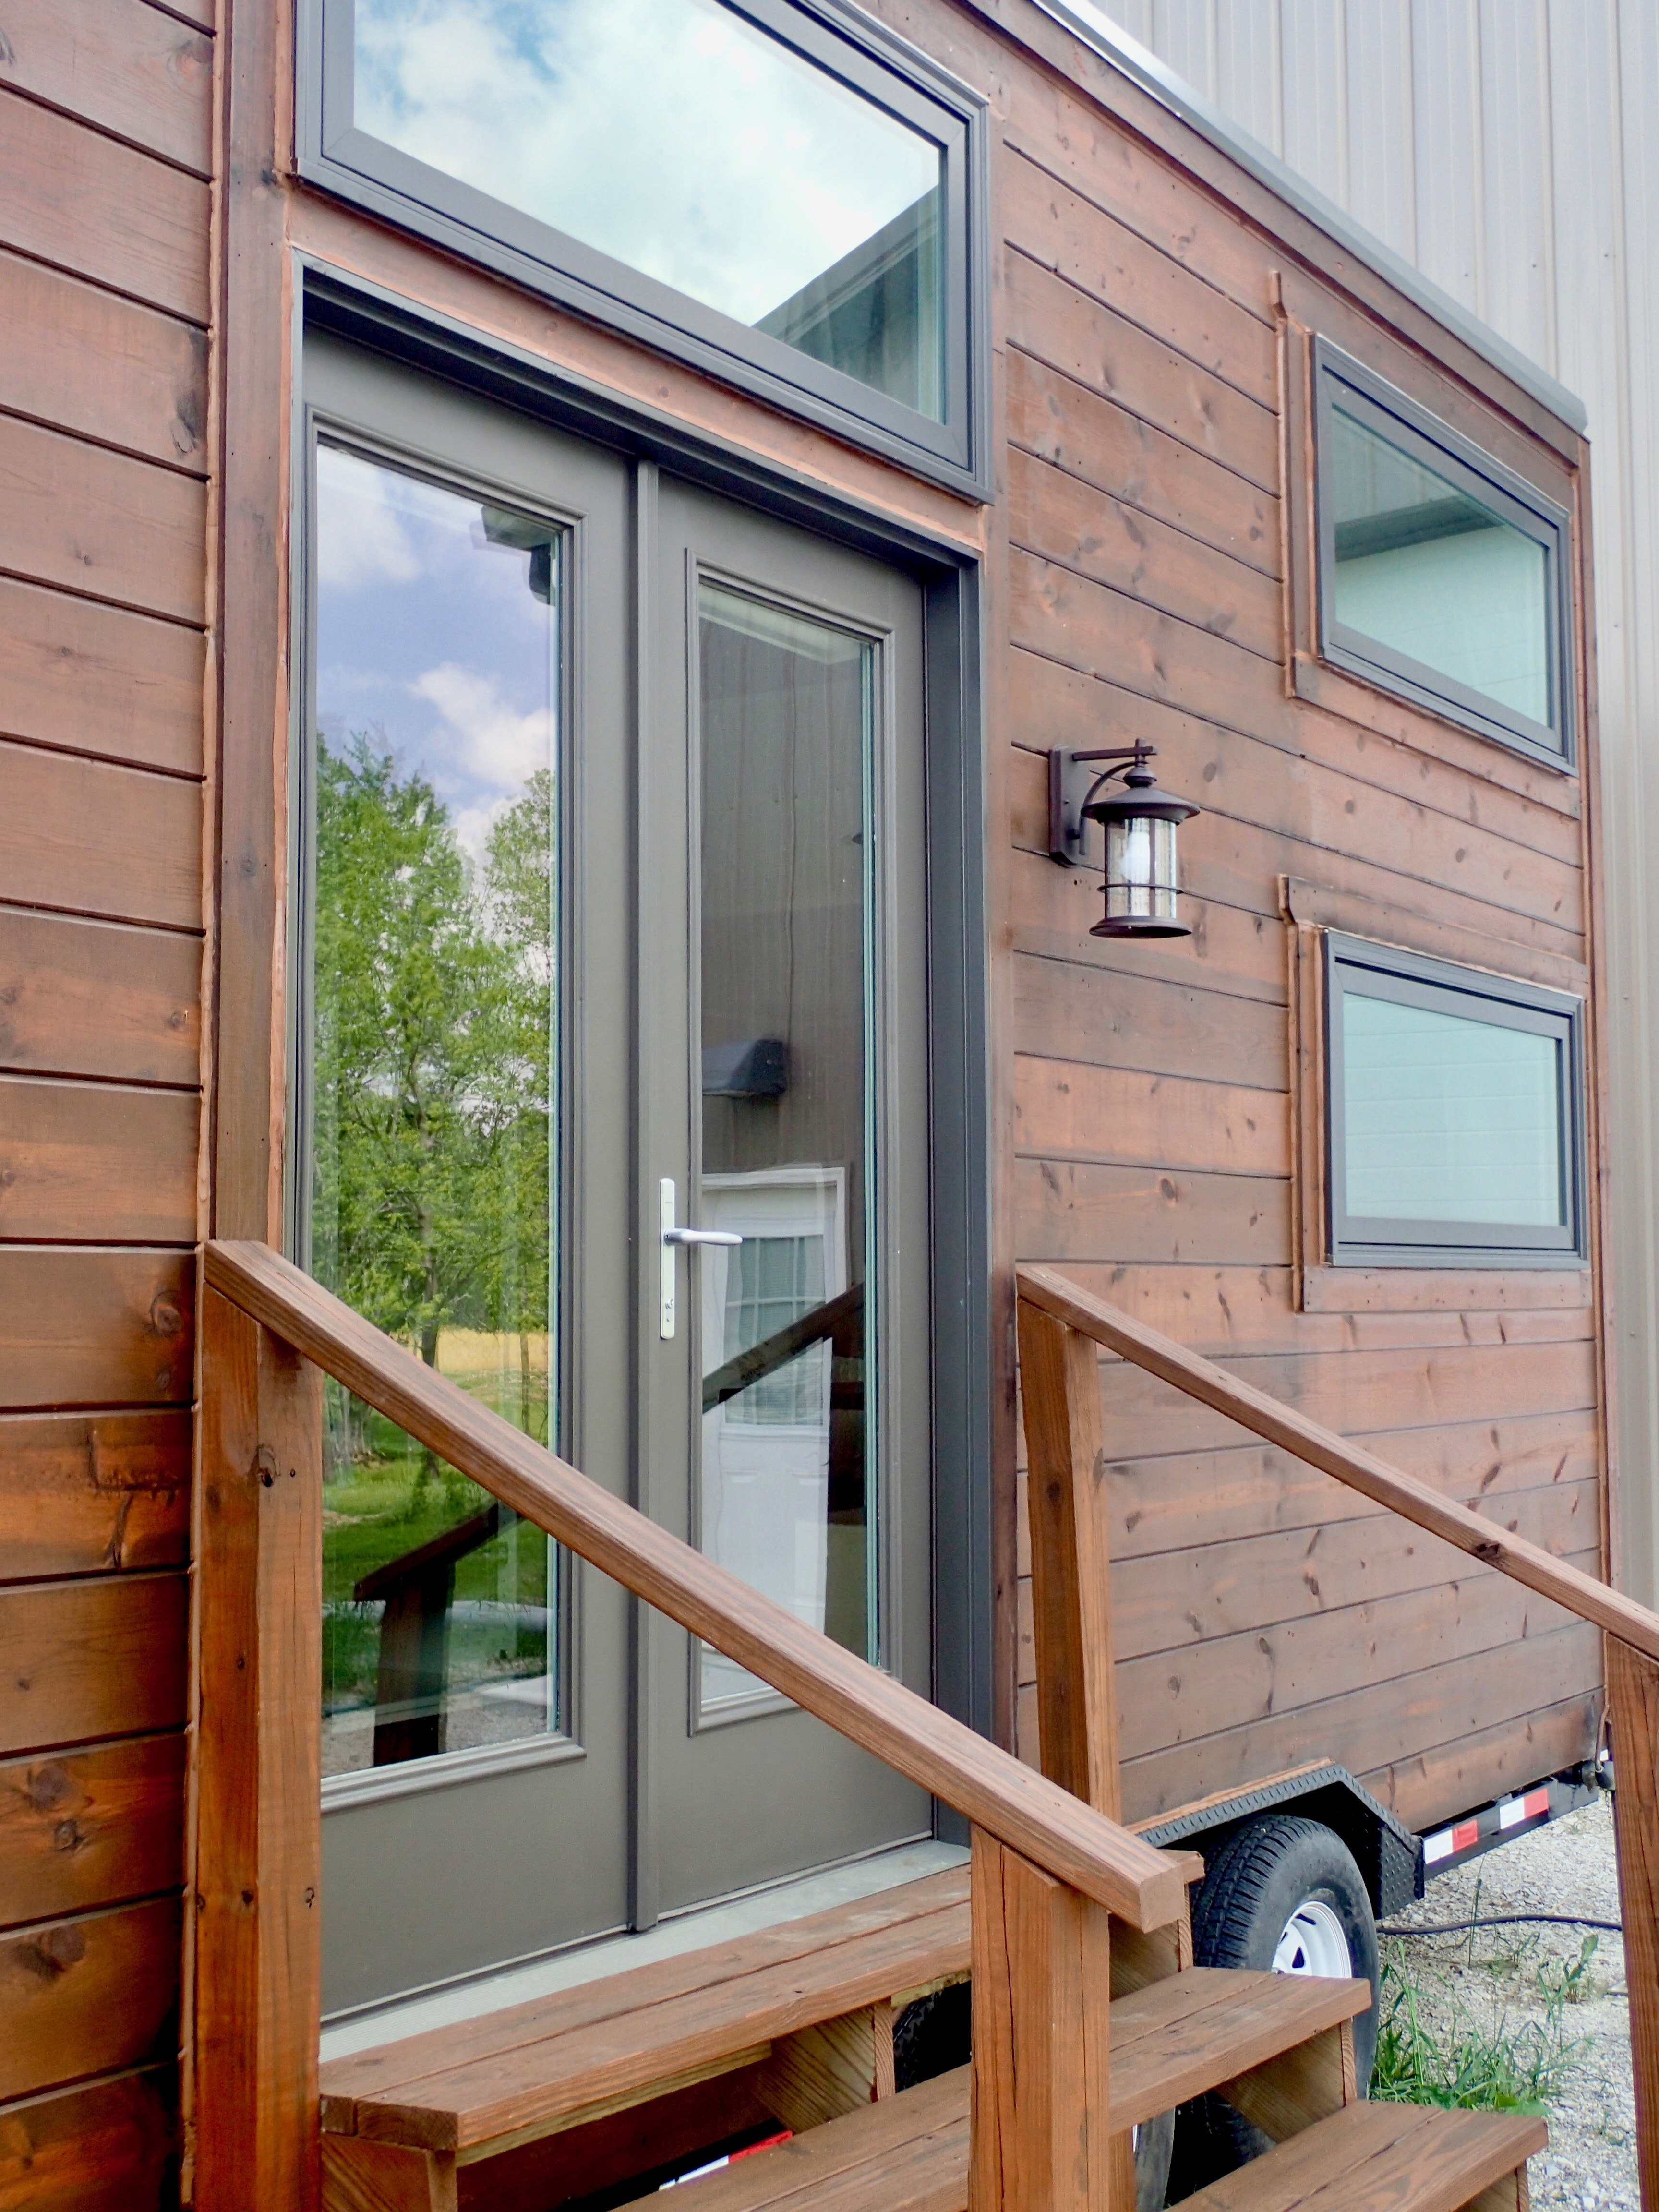 The Little Leaf Laura E Yates Consulting Building Tiny House On Flatbed Trailer And Need Brake Controller Exterior Front Door Angle